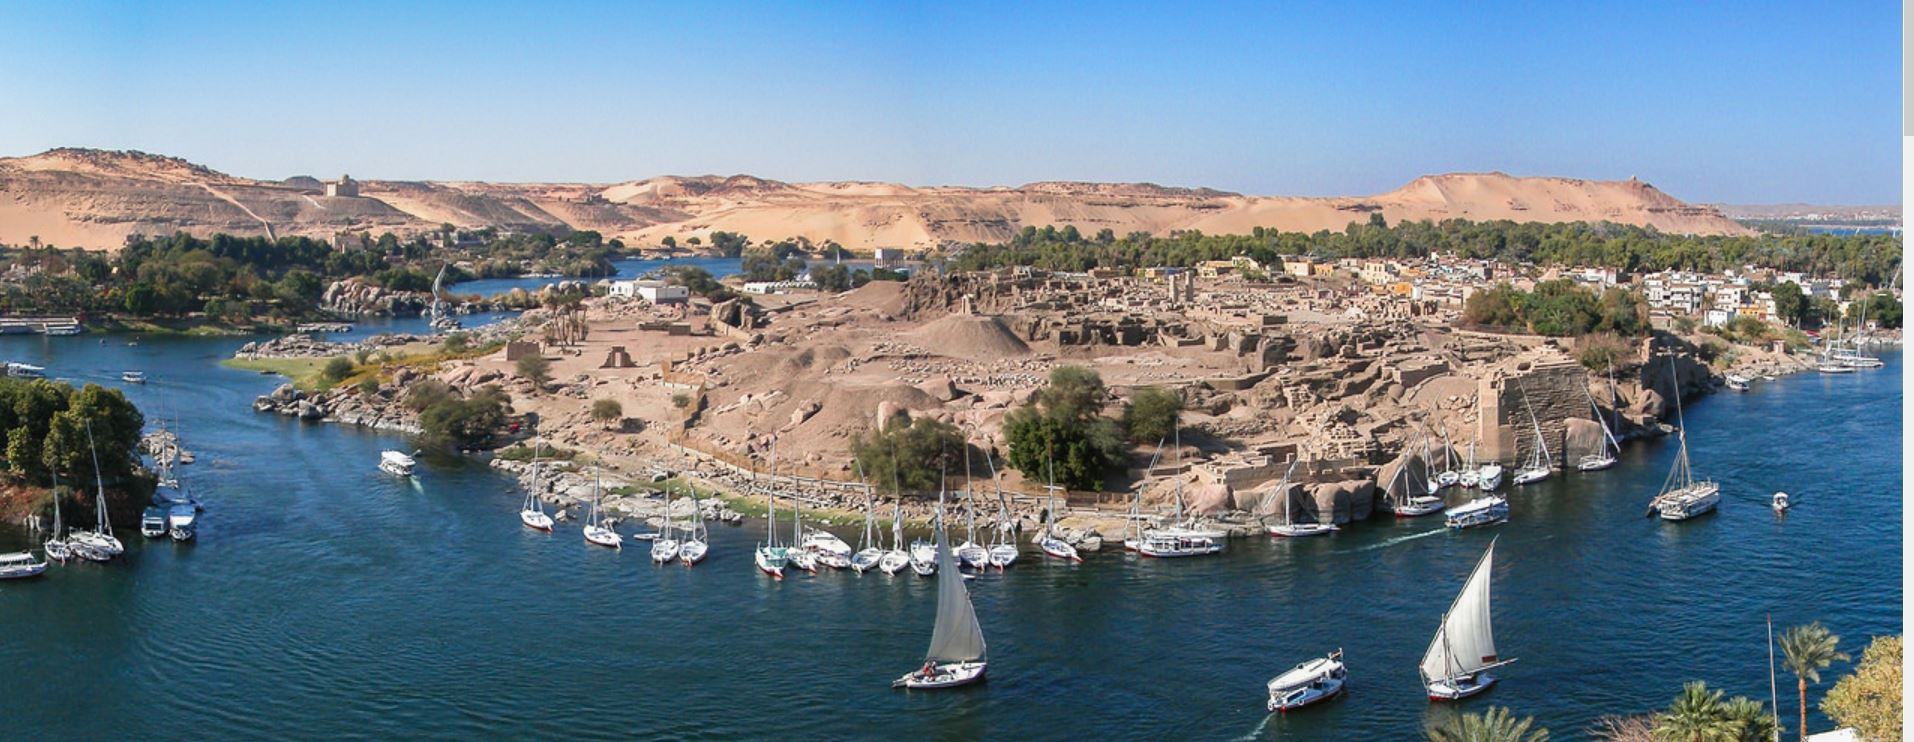 Assouan 5958742017092008464120080216Egypte20080150Panorama2JeanMarcREMYFlickr